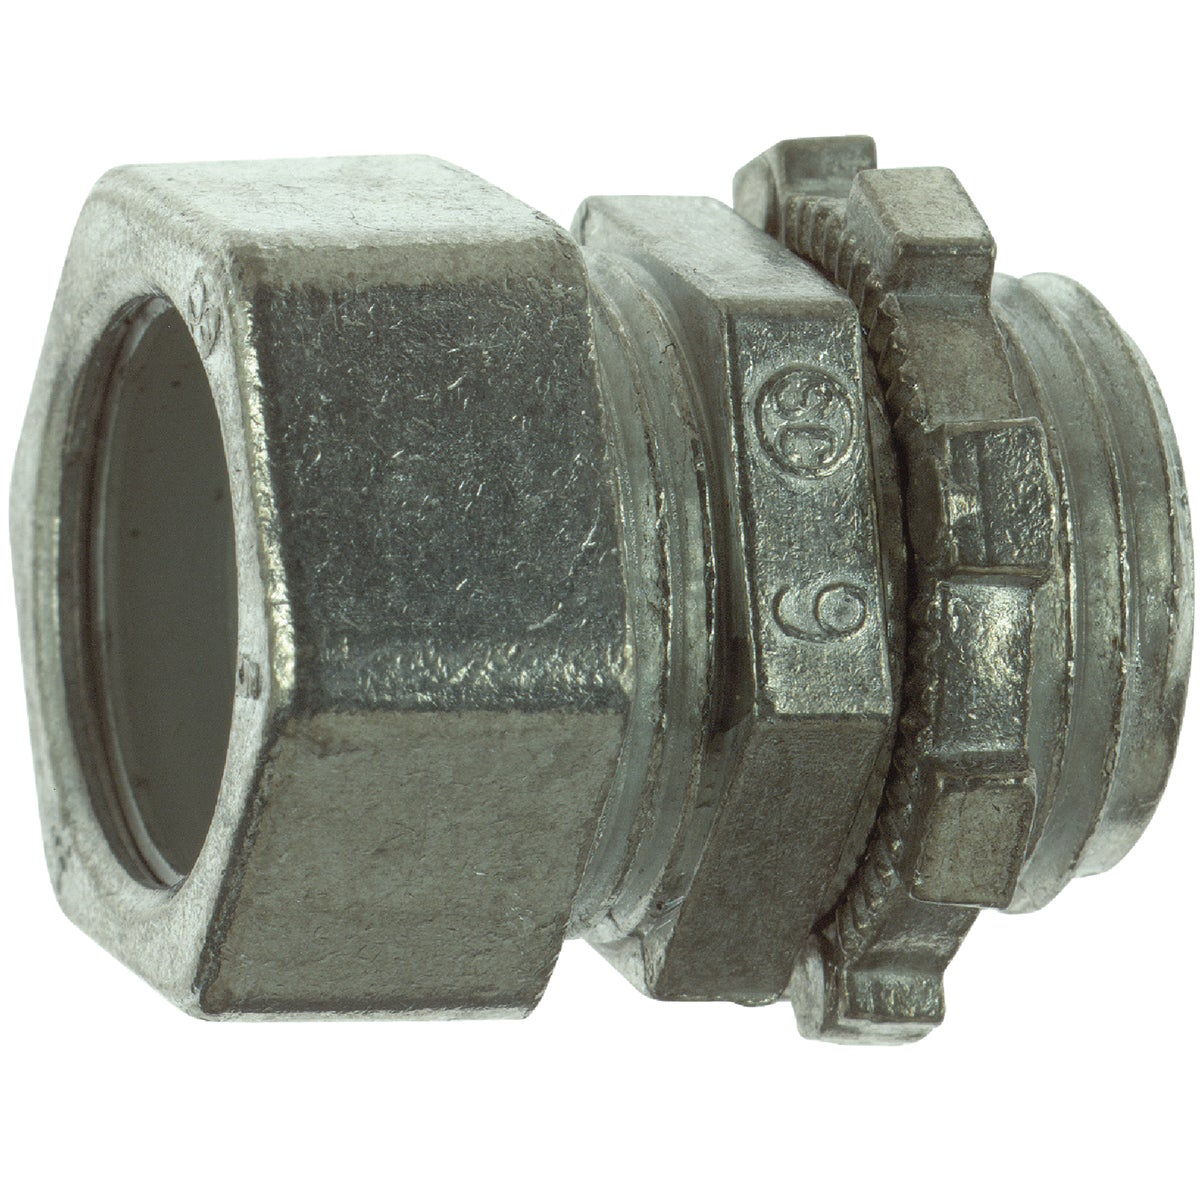 "5PC 1/2"" EMT CONNECTOR - TC211SC5 by Thomas & Betts"